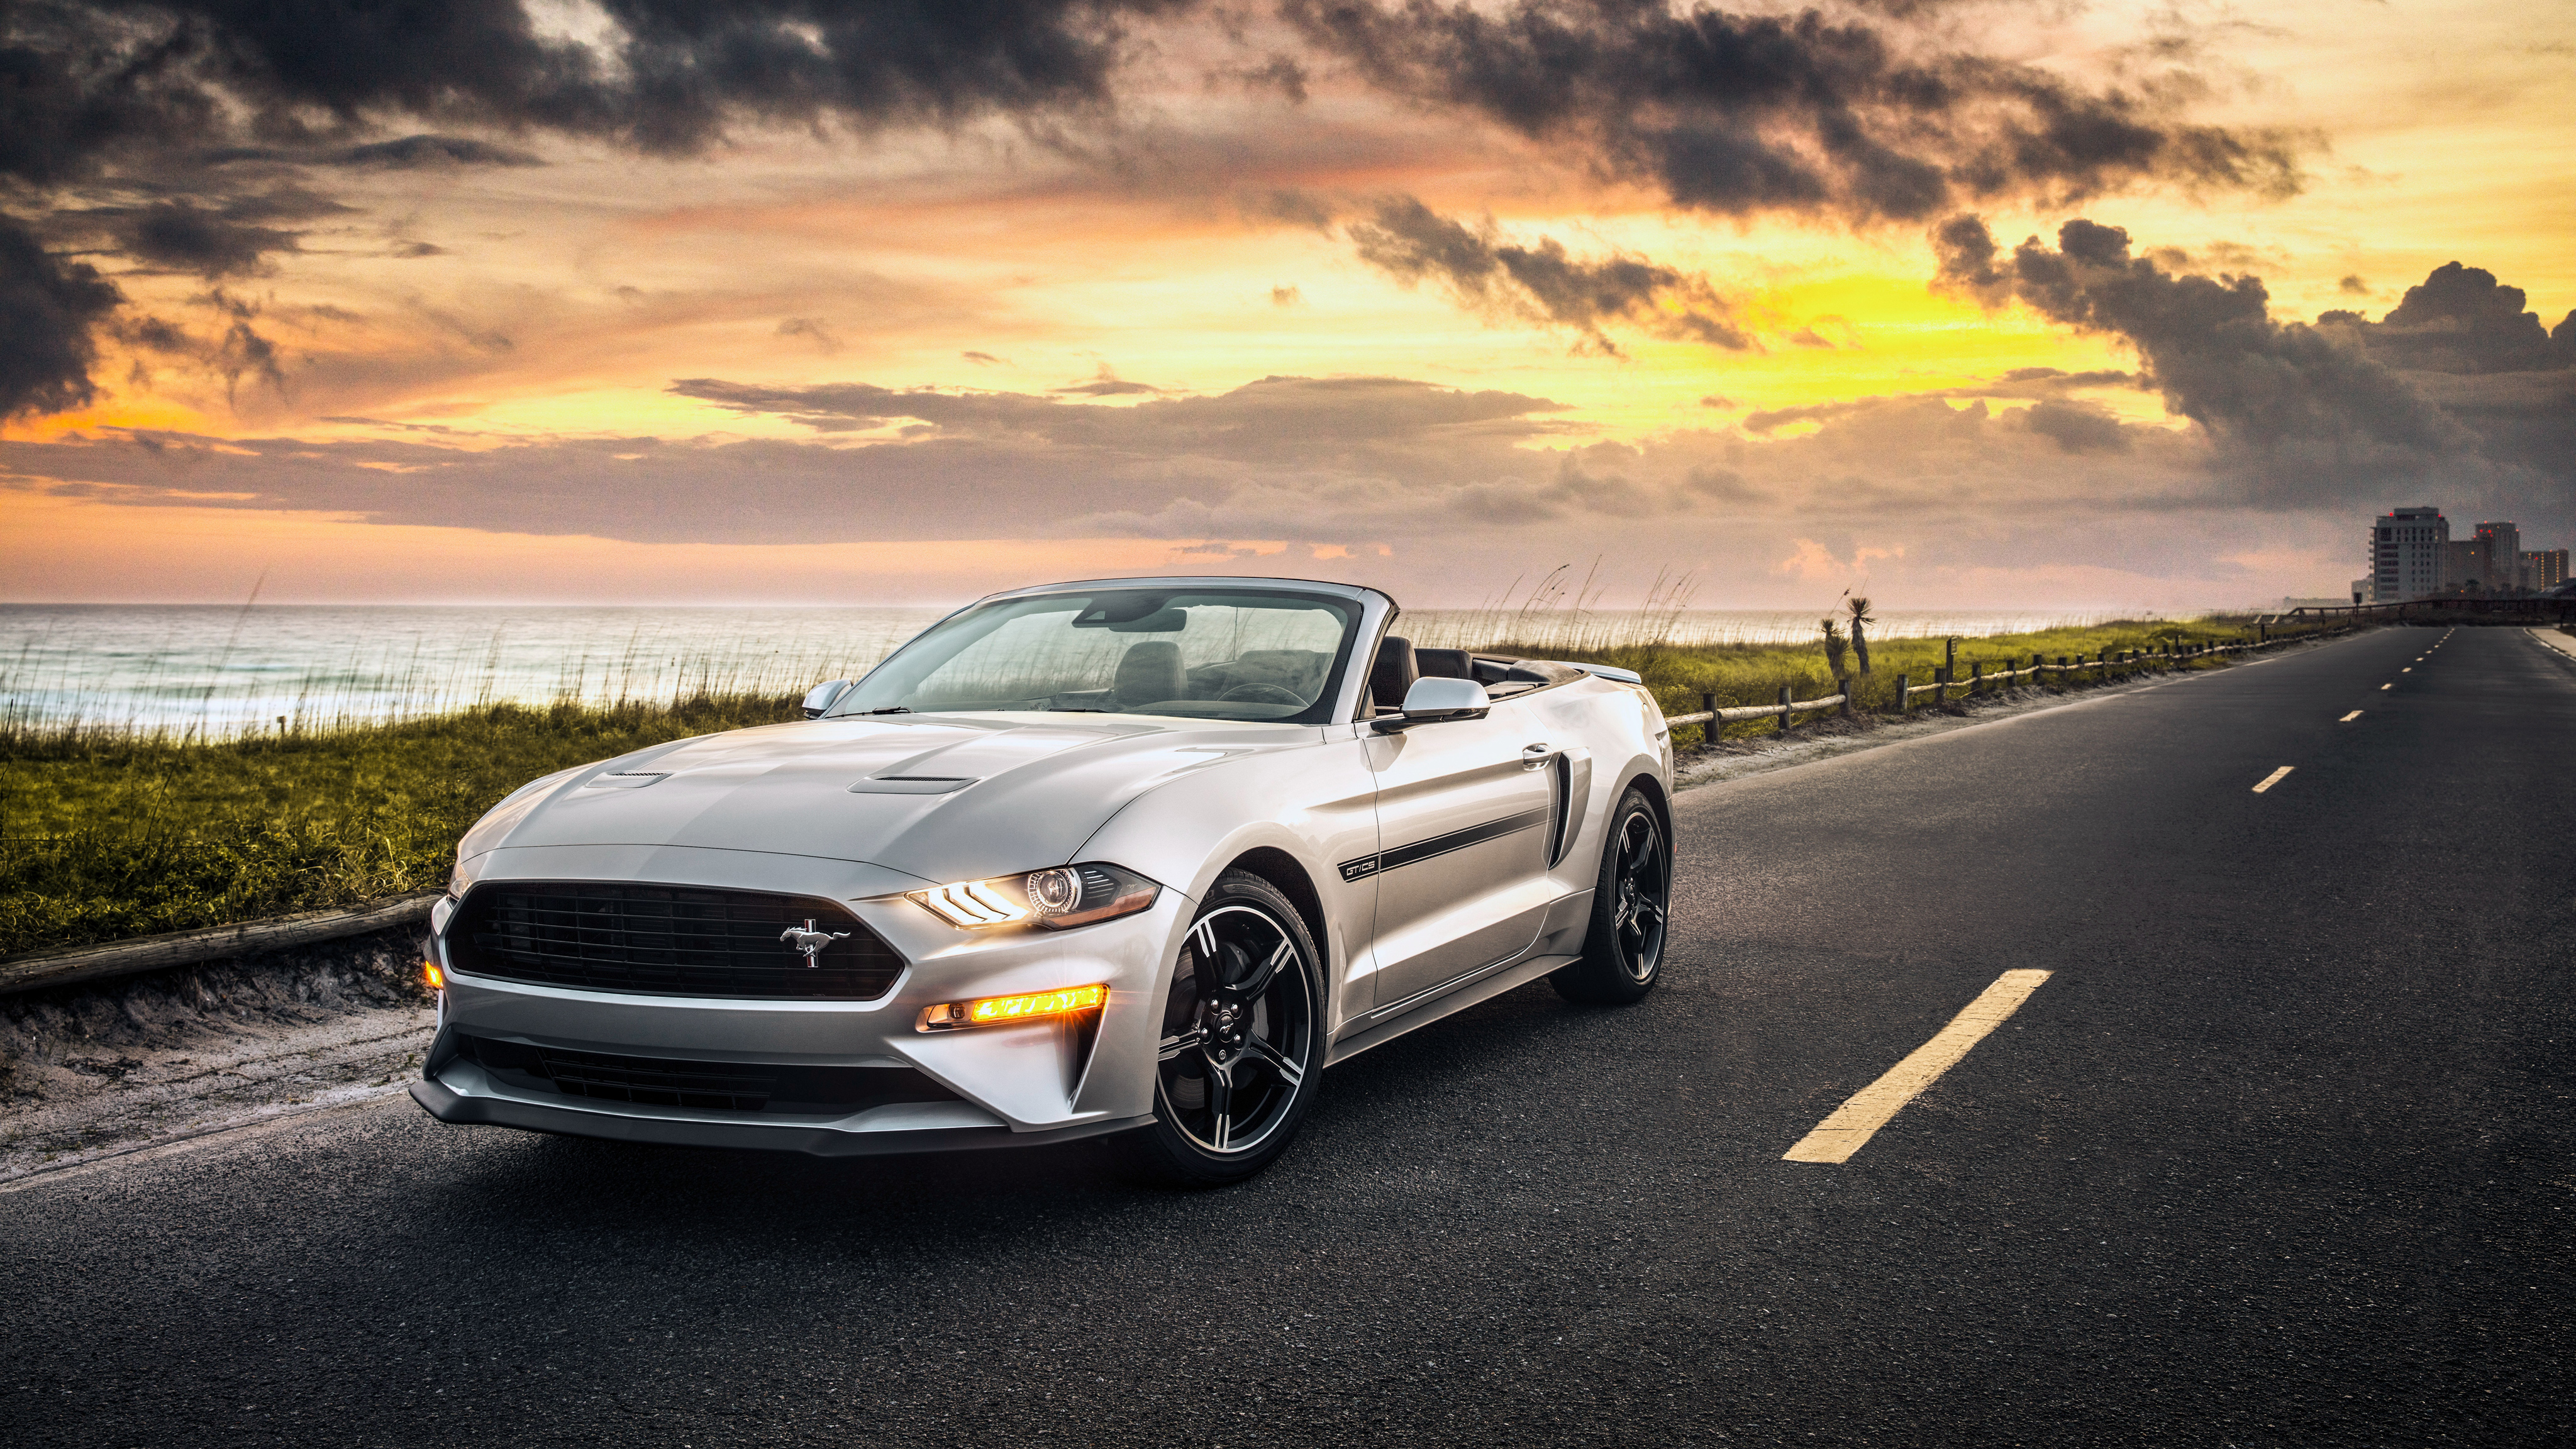 Ford F 150 Shelby >> 2019 Ford Mustang GT Convertible California 4K Wallpaper | HD Car Wallpapers| ID #9987